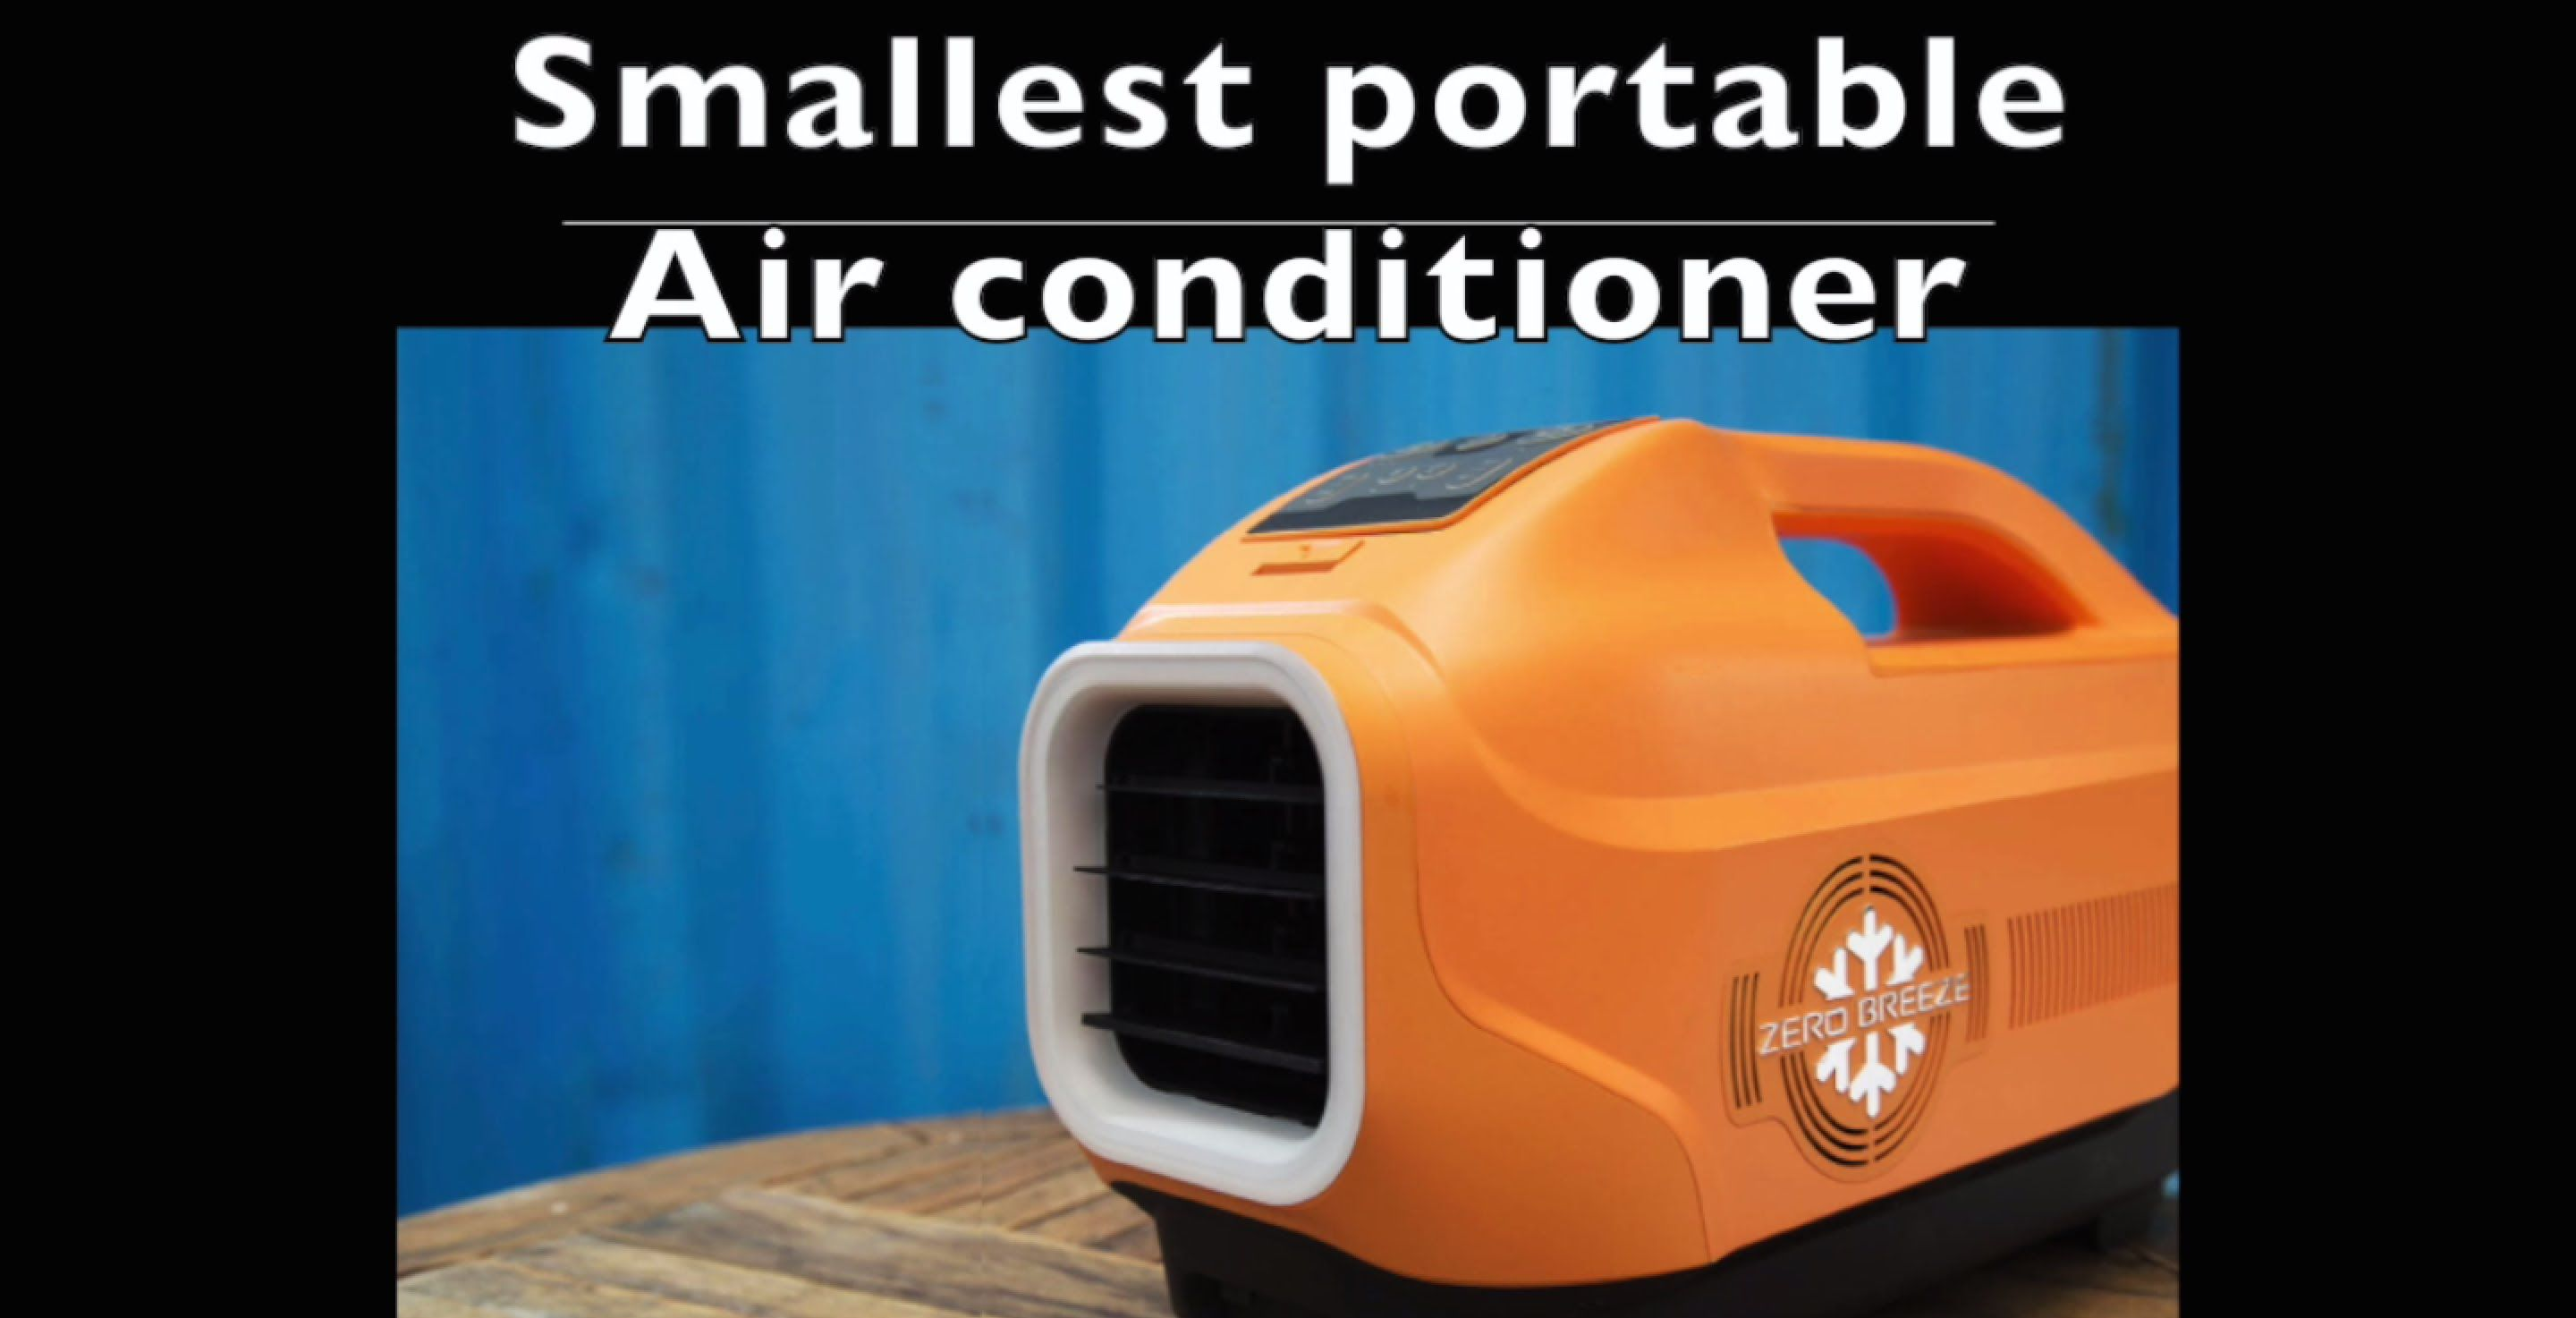 Zero Breeze battery operated air conditioner portable